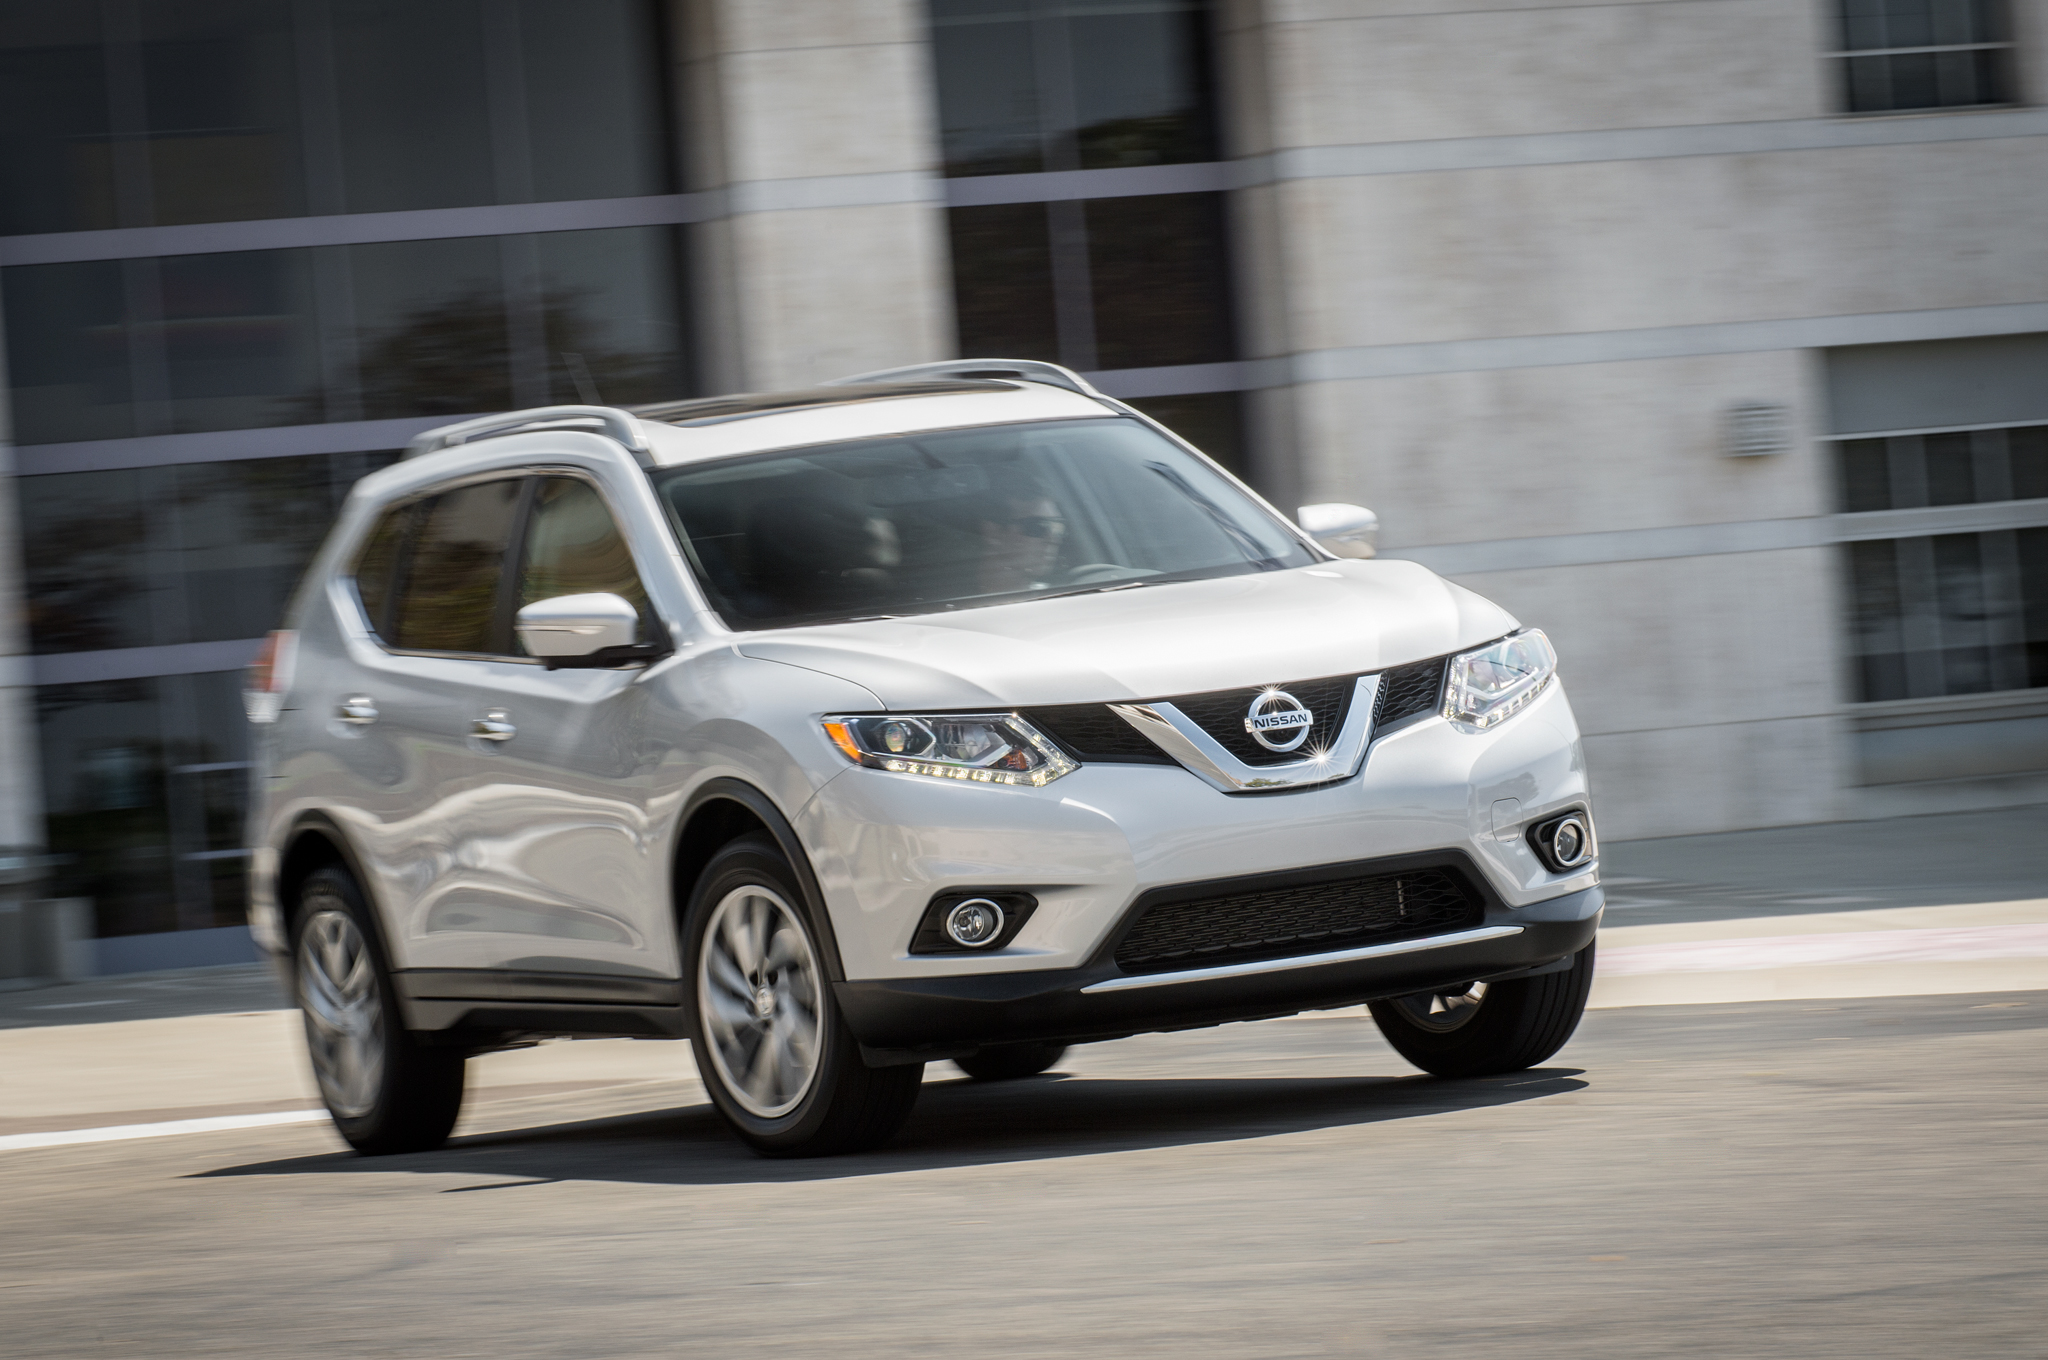 Nissan Rogue Service Manual: Oil